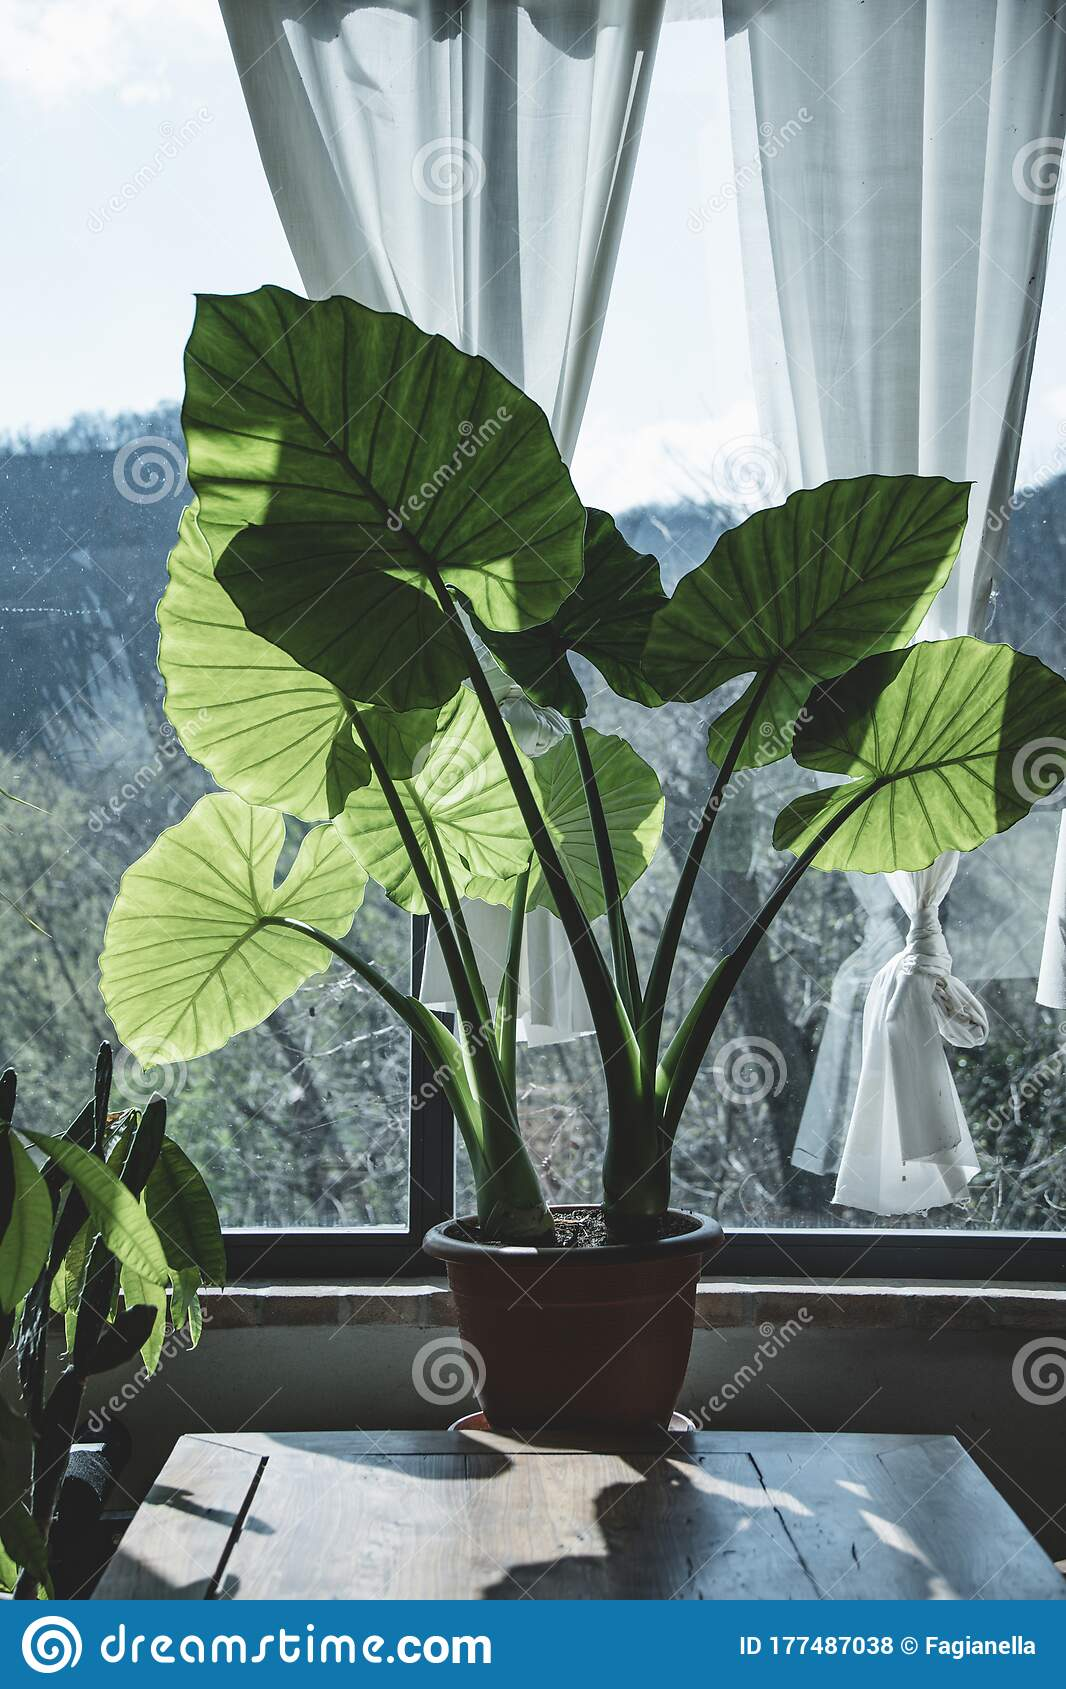 Elephant Ears Plants Indoor Stock Photo Image Of Feeling Plants 177487038